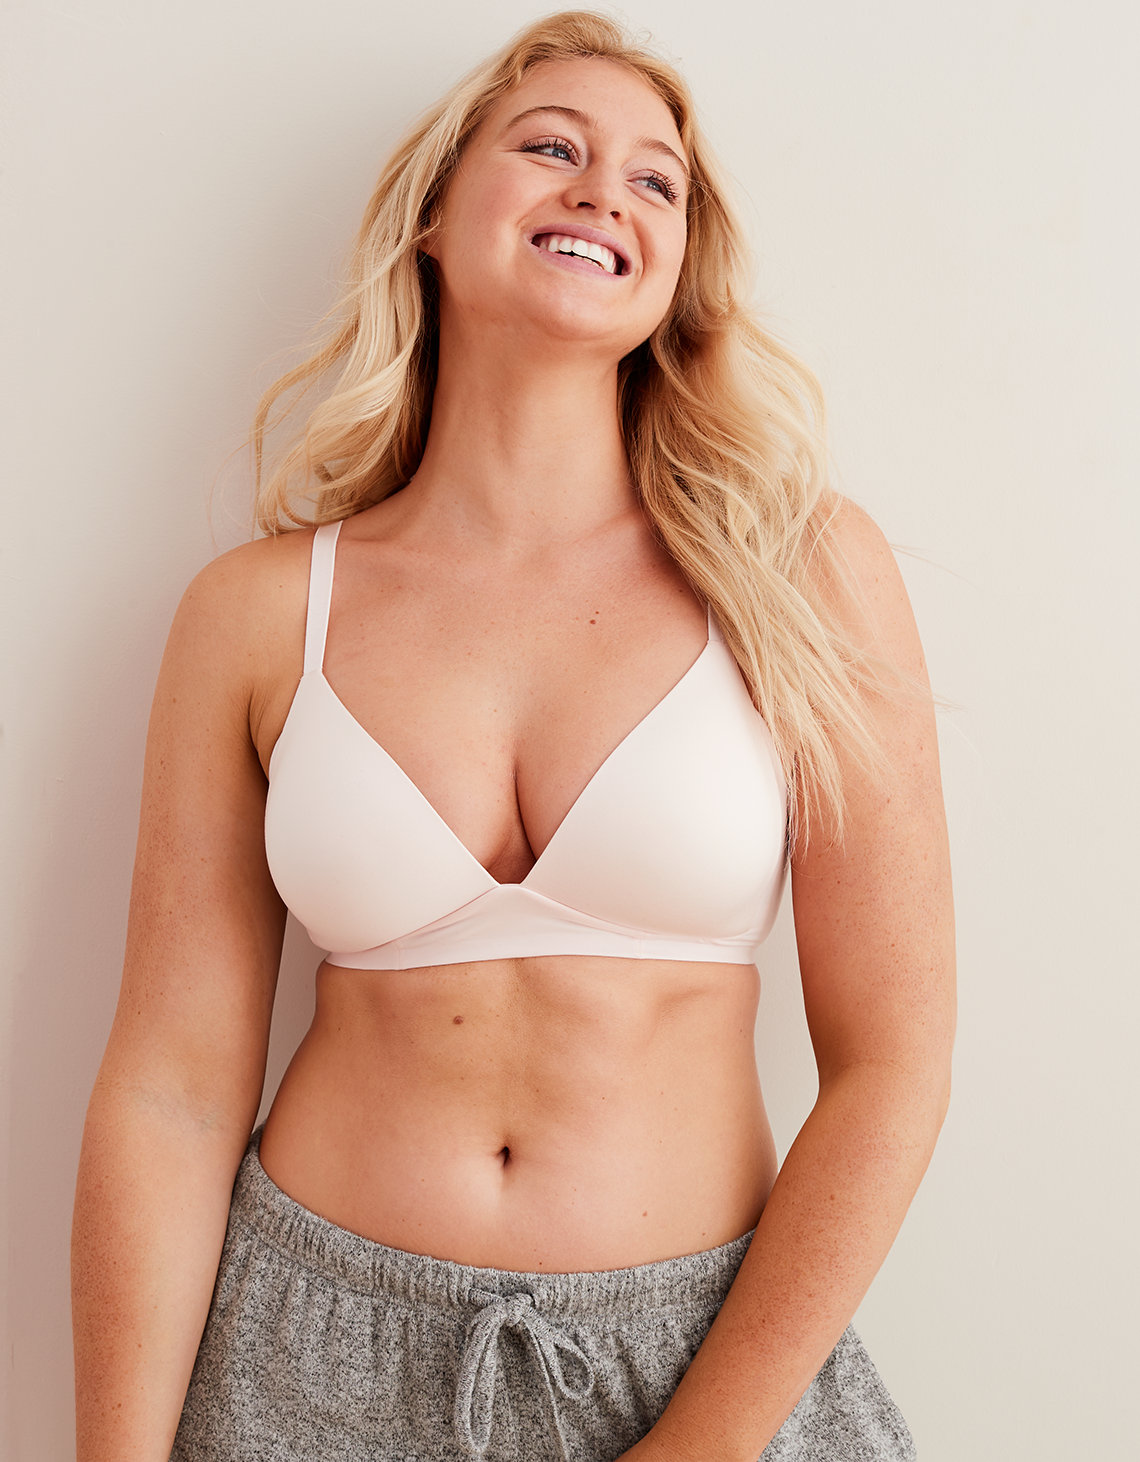 af1378f15c0c6 Aerie Real Sunnie Wireless Lightly Lined Bra. Placeholder image. Product  Image